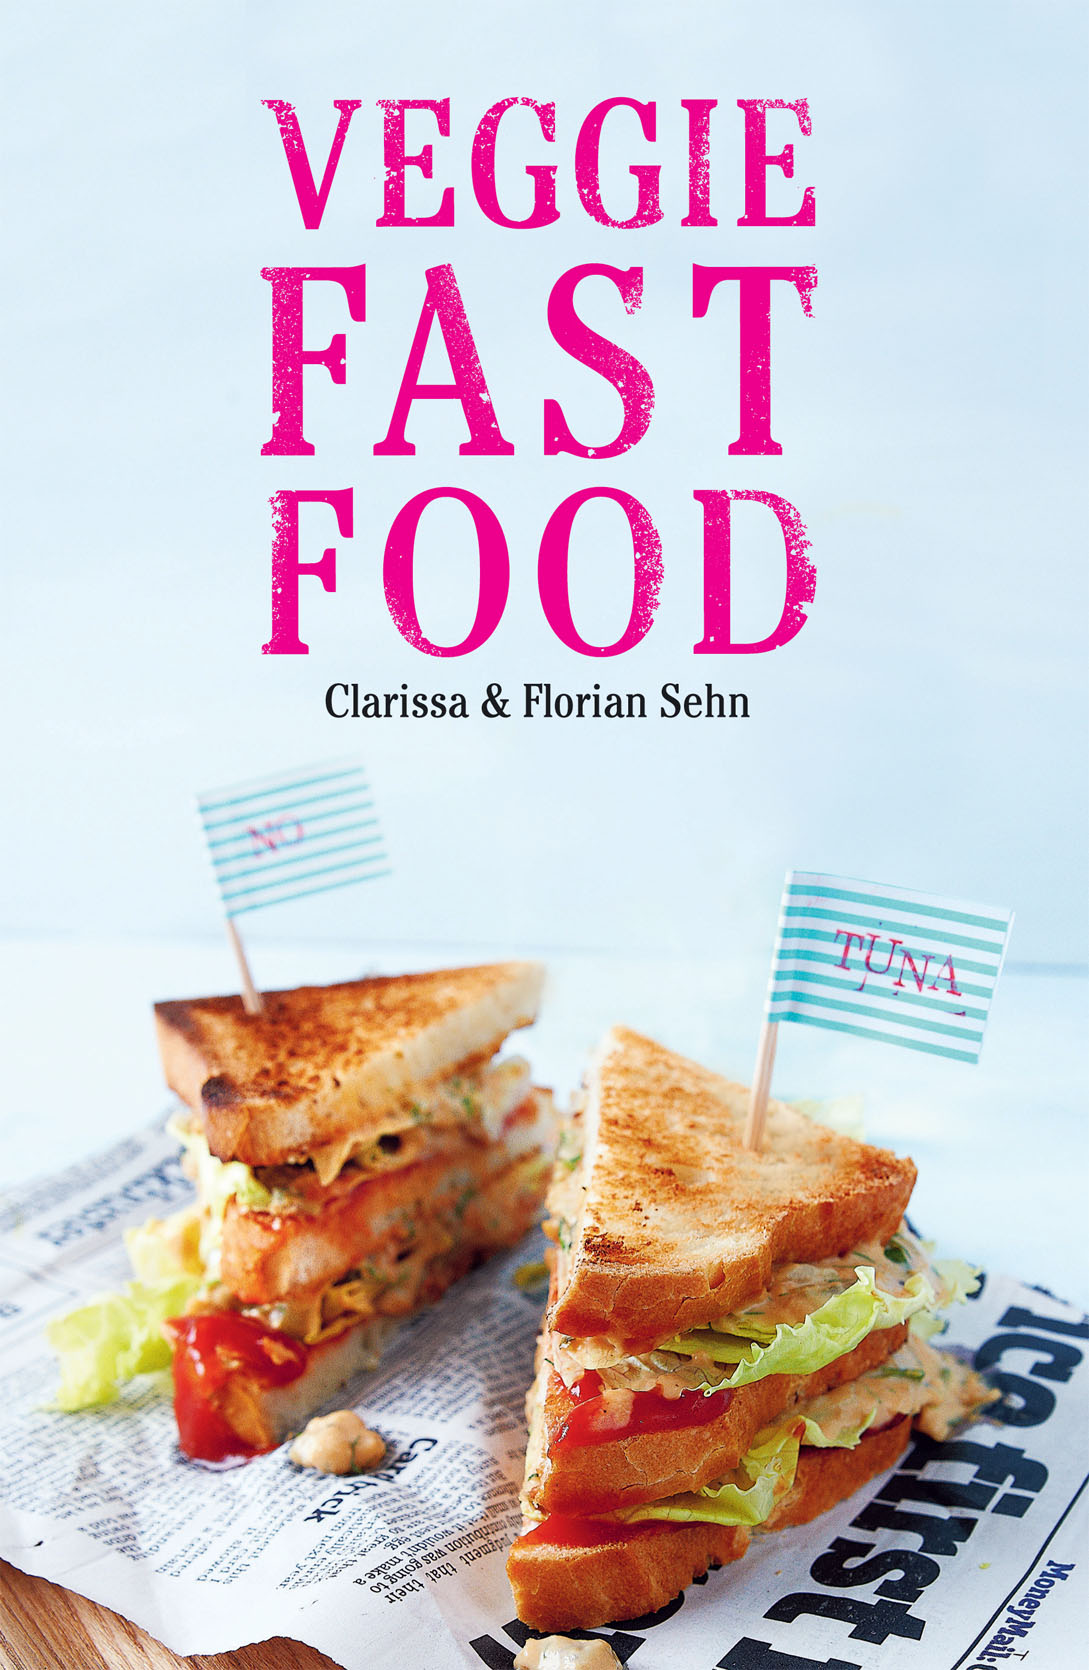 Veggie fast food grub street publishing 9781910690185 forumfinder Image collections